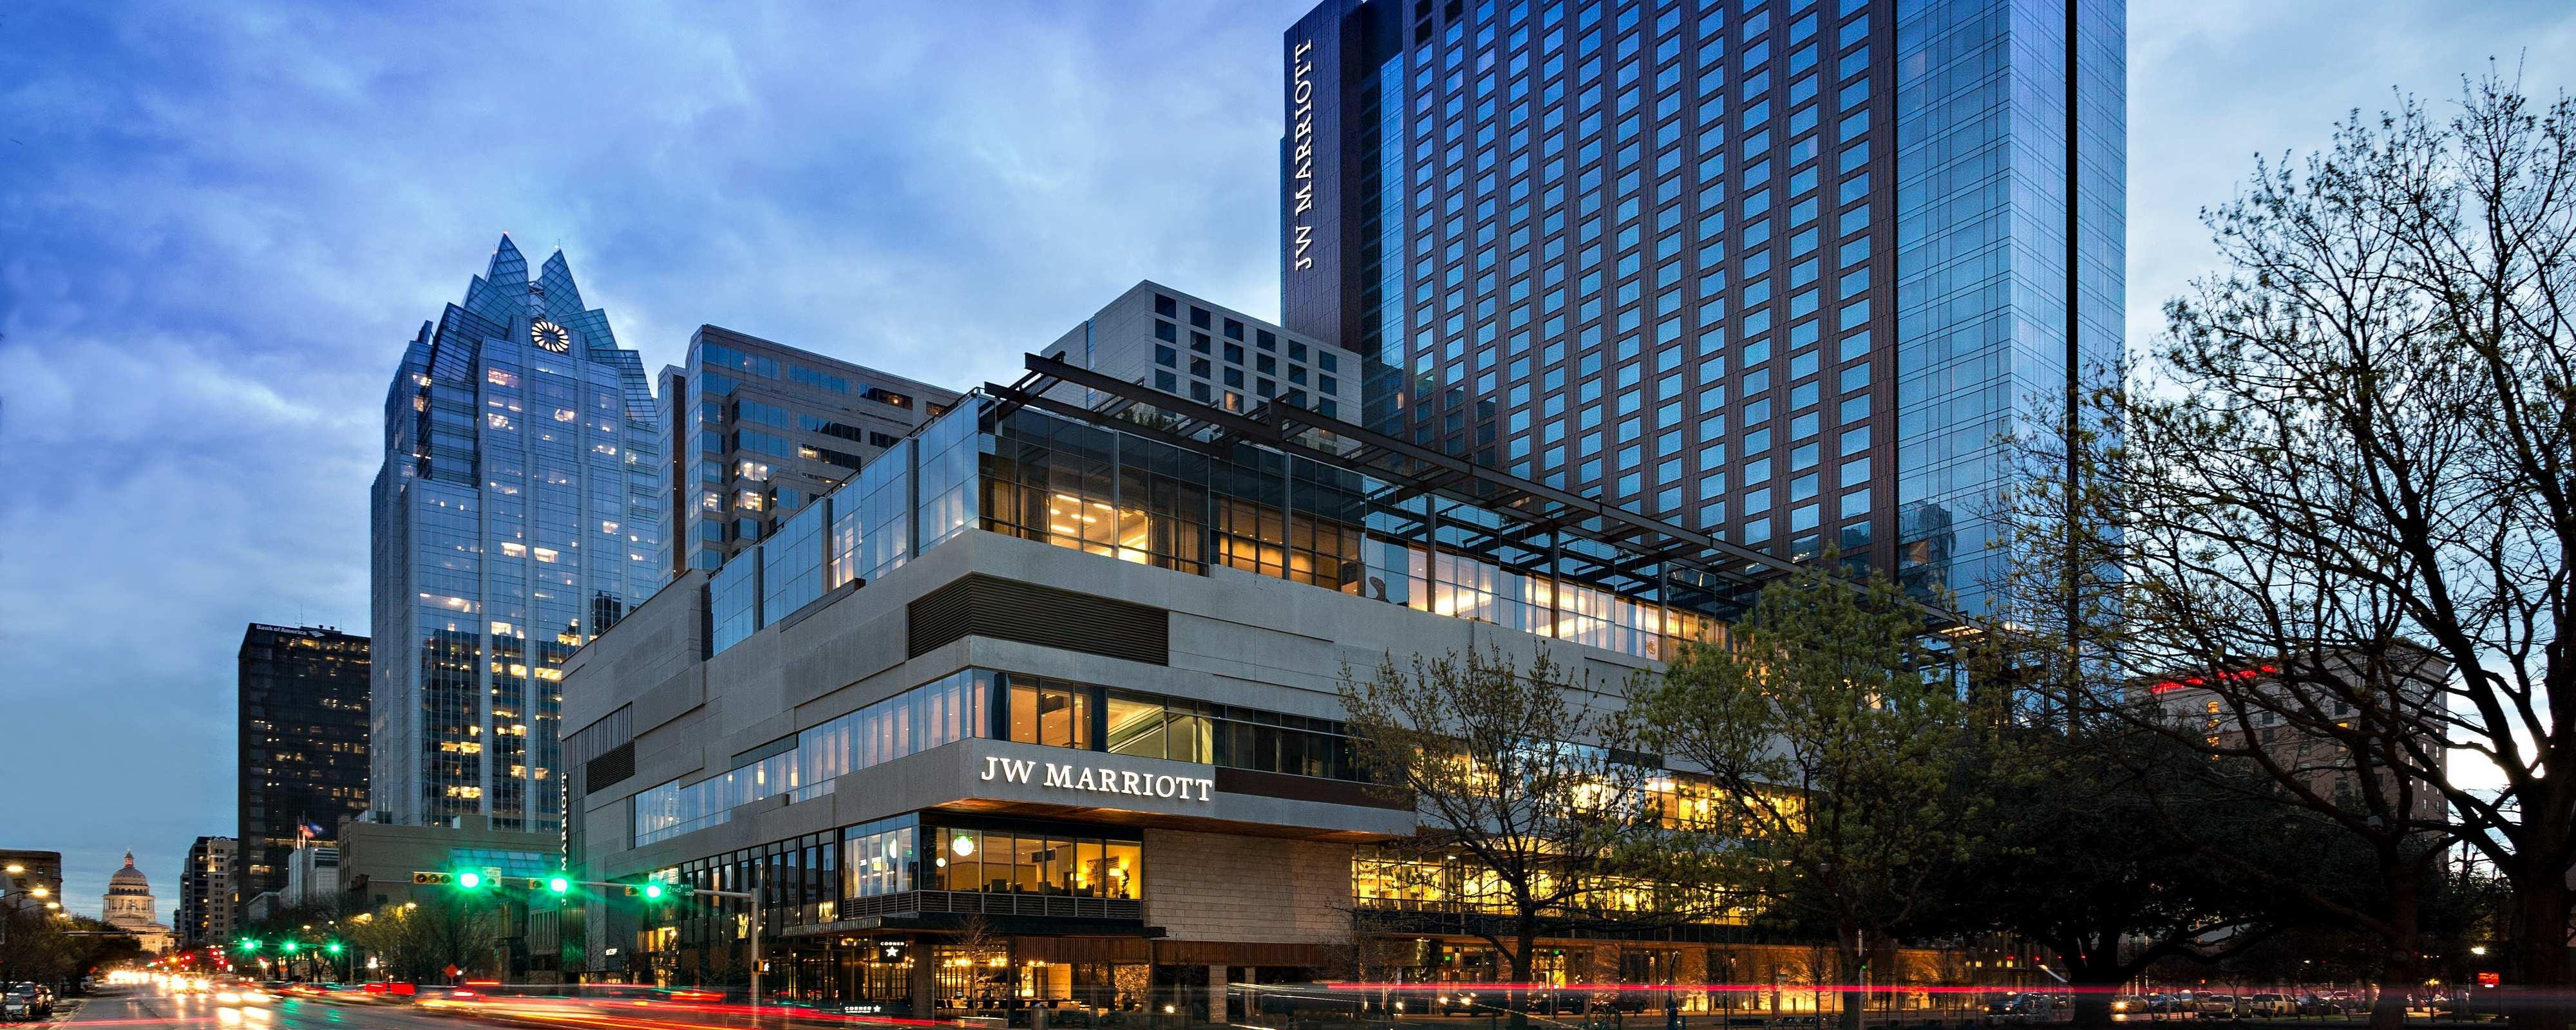 Jw Marriott Essex House Marketing Mail: JW Marriott Austin Downtown Luxury Hotel